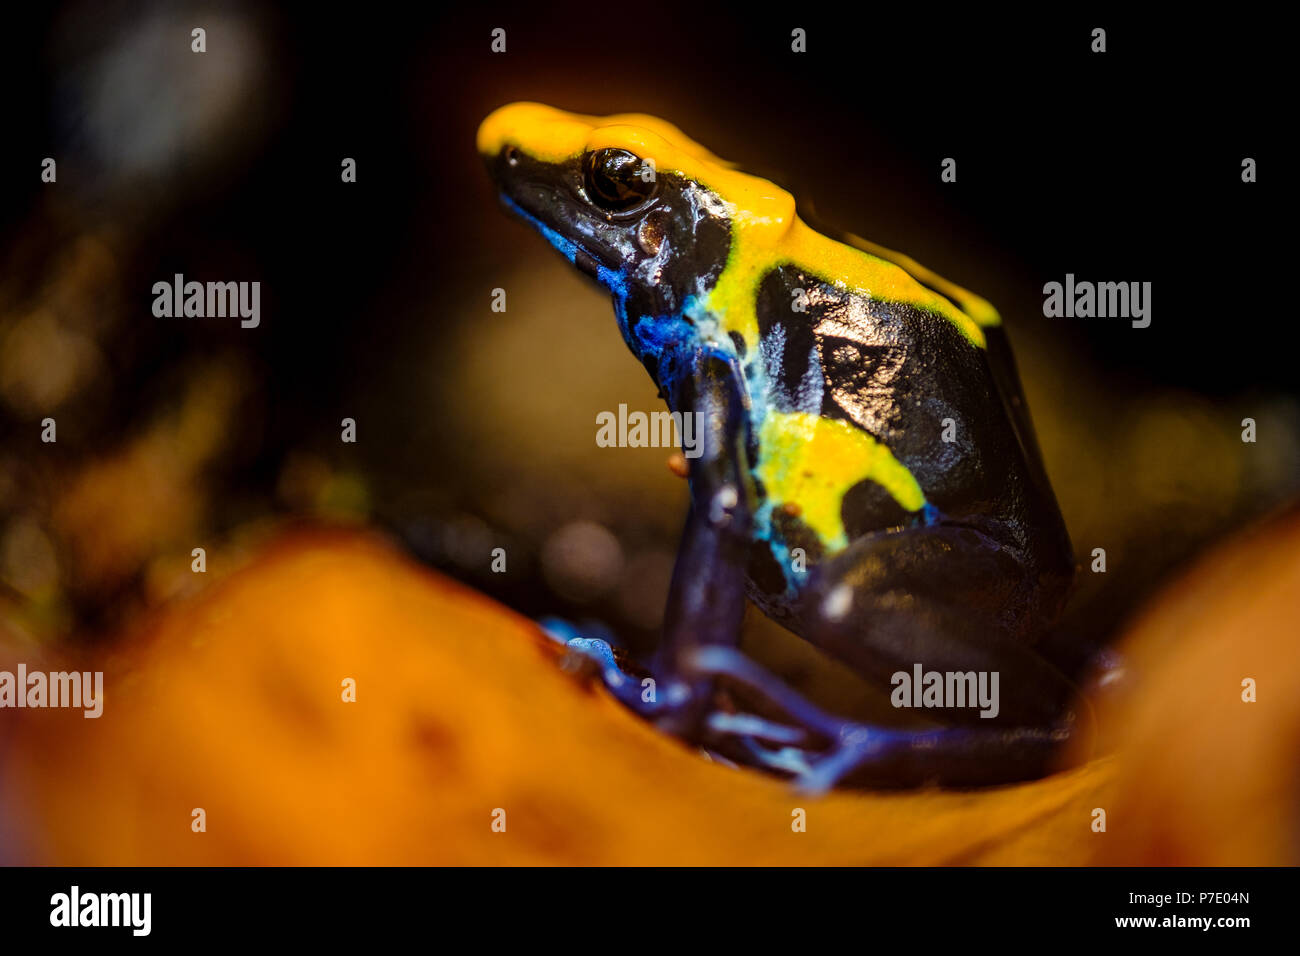 The dyeing dart frog, tinc (a nickname given by those in the hobby of keeping dart frogs), or dyeing poison frog (Dendrobates tinctorius) is a species - Stock Image